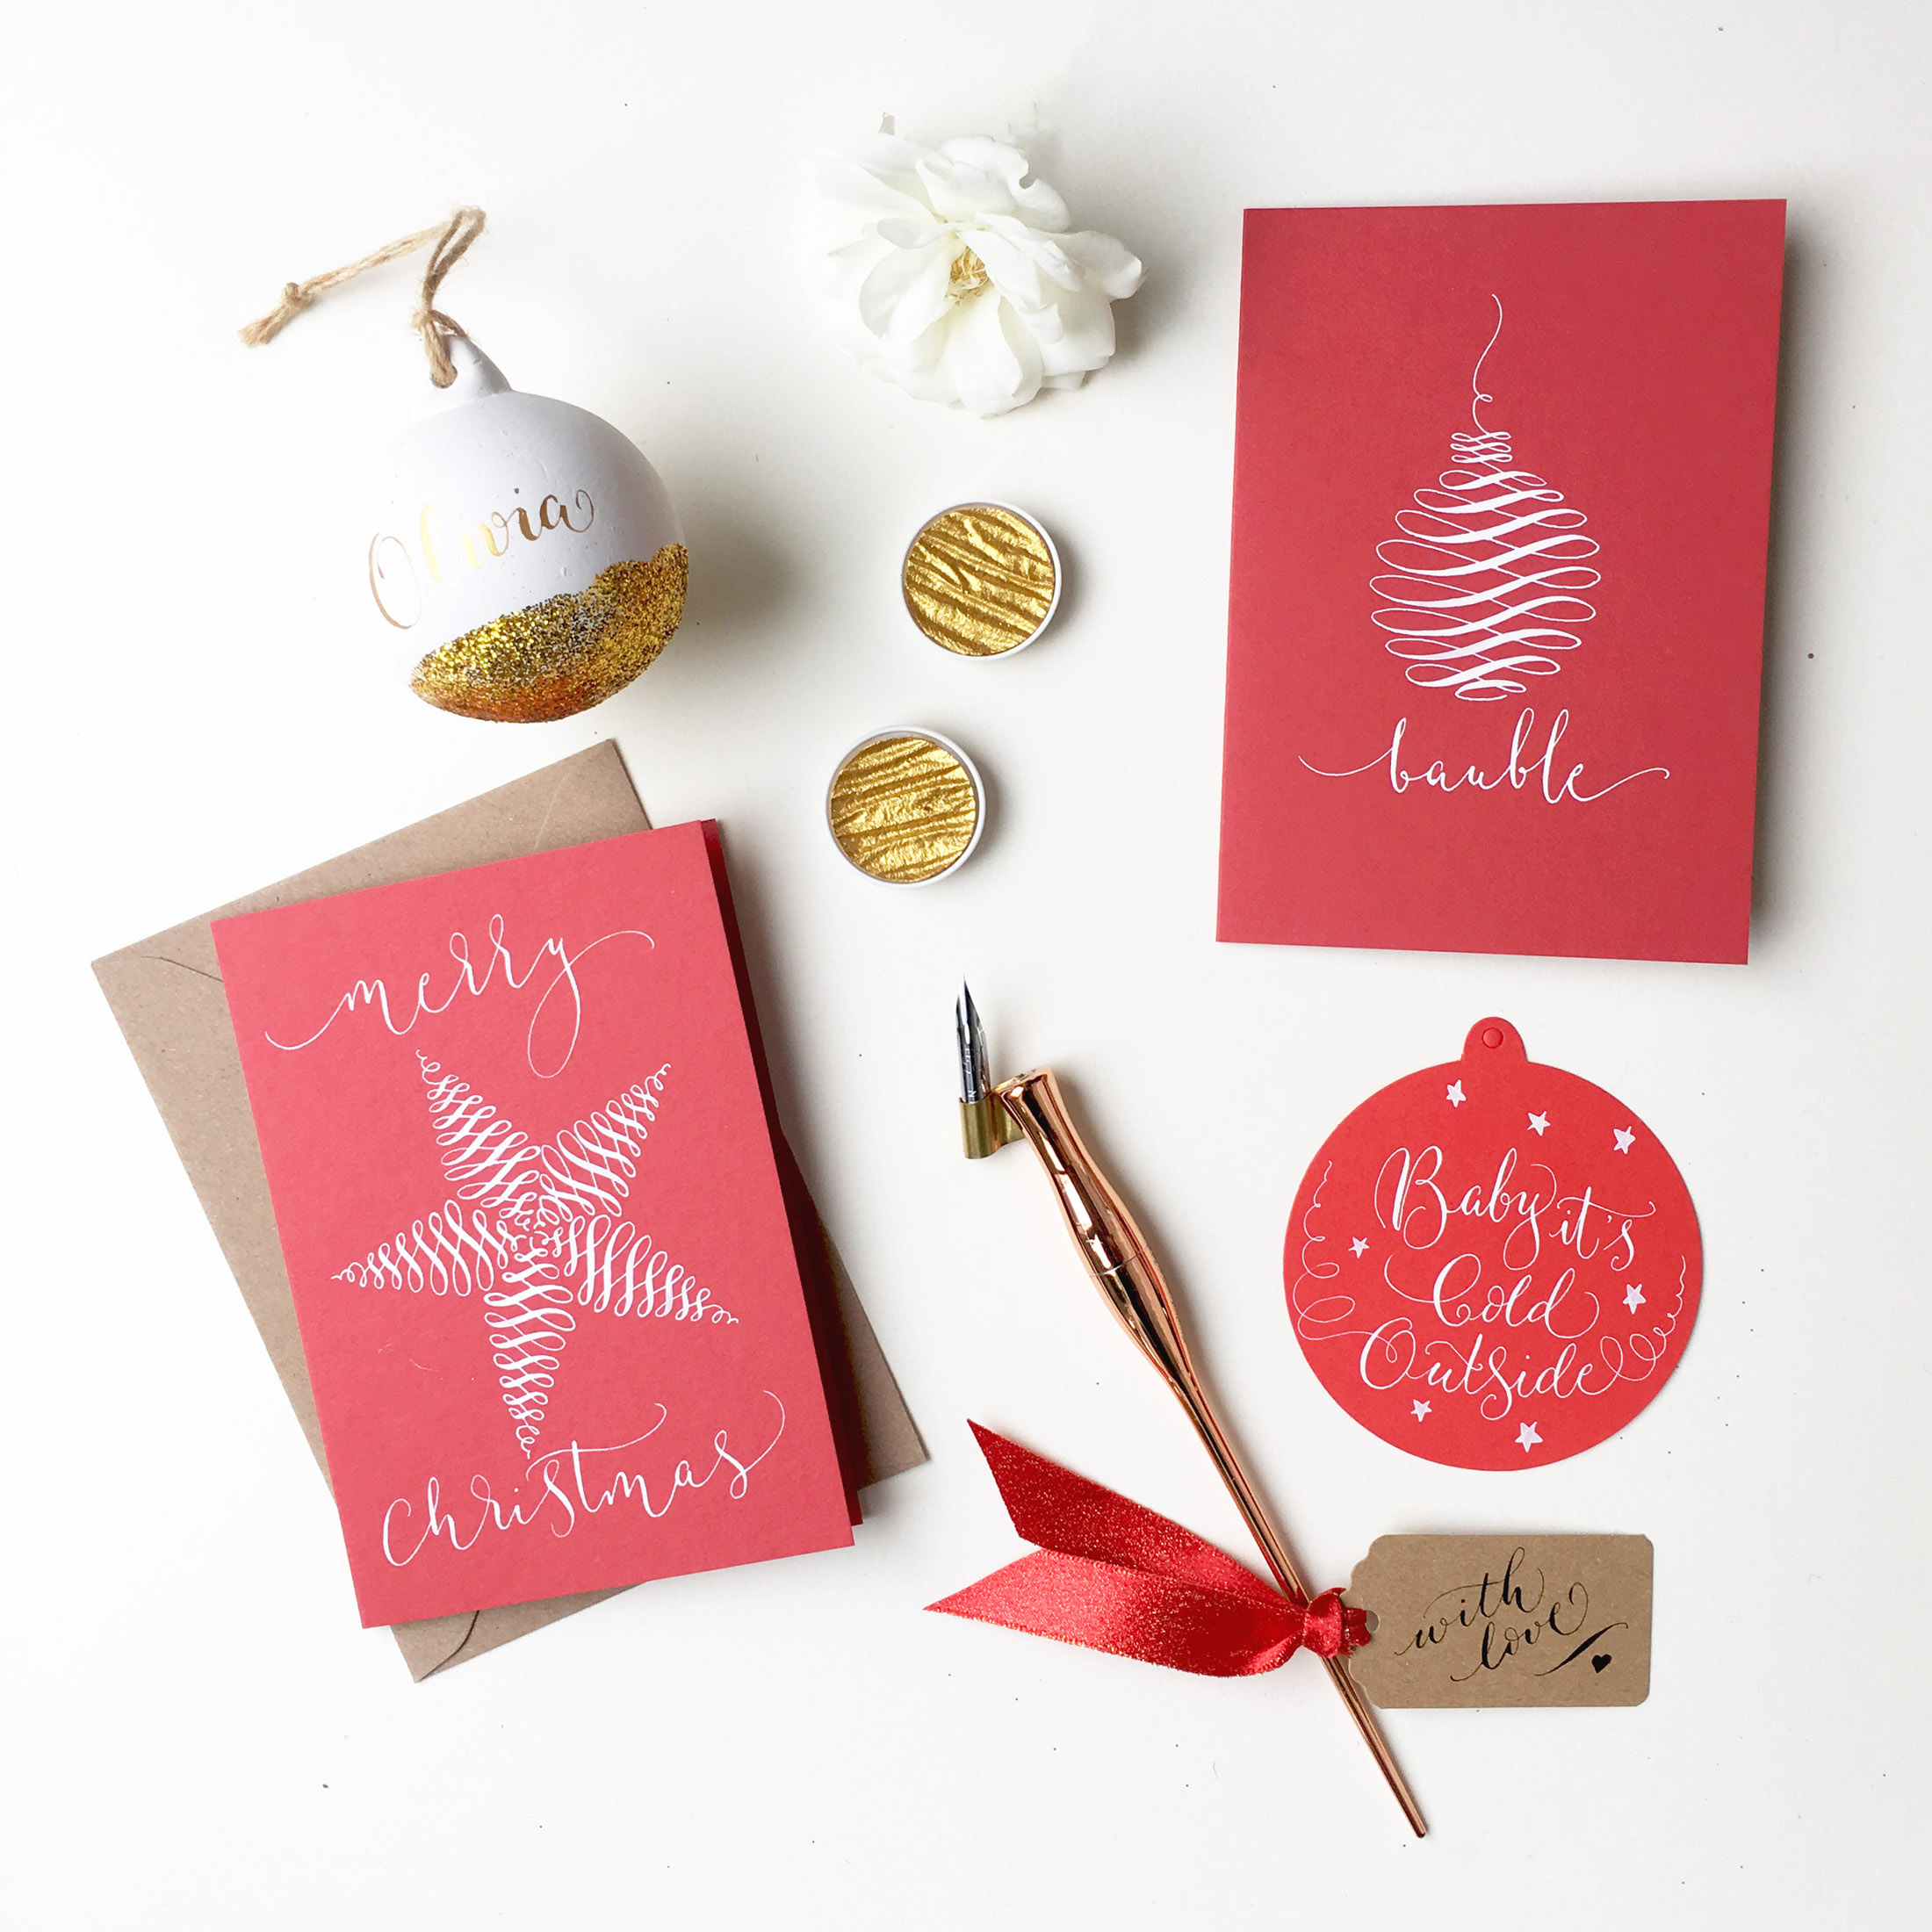 Christmas Calligraphy Workshop in Manchester!